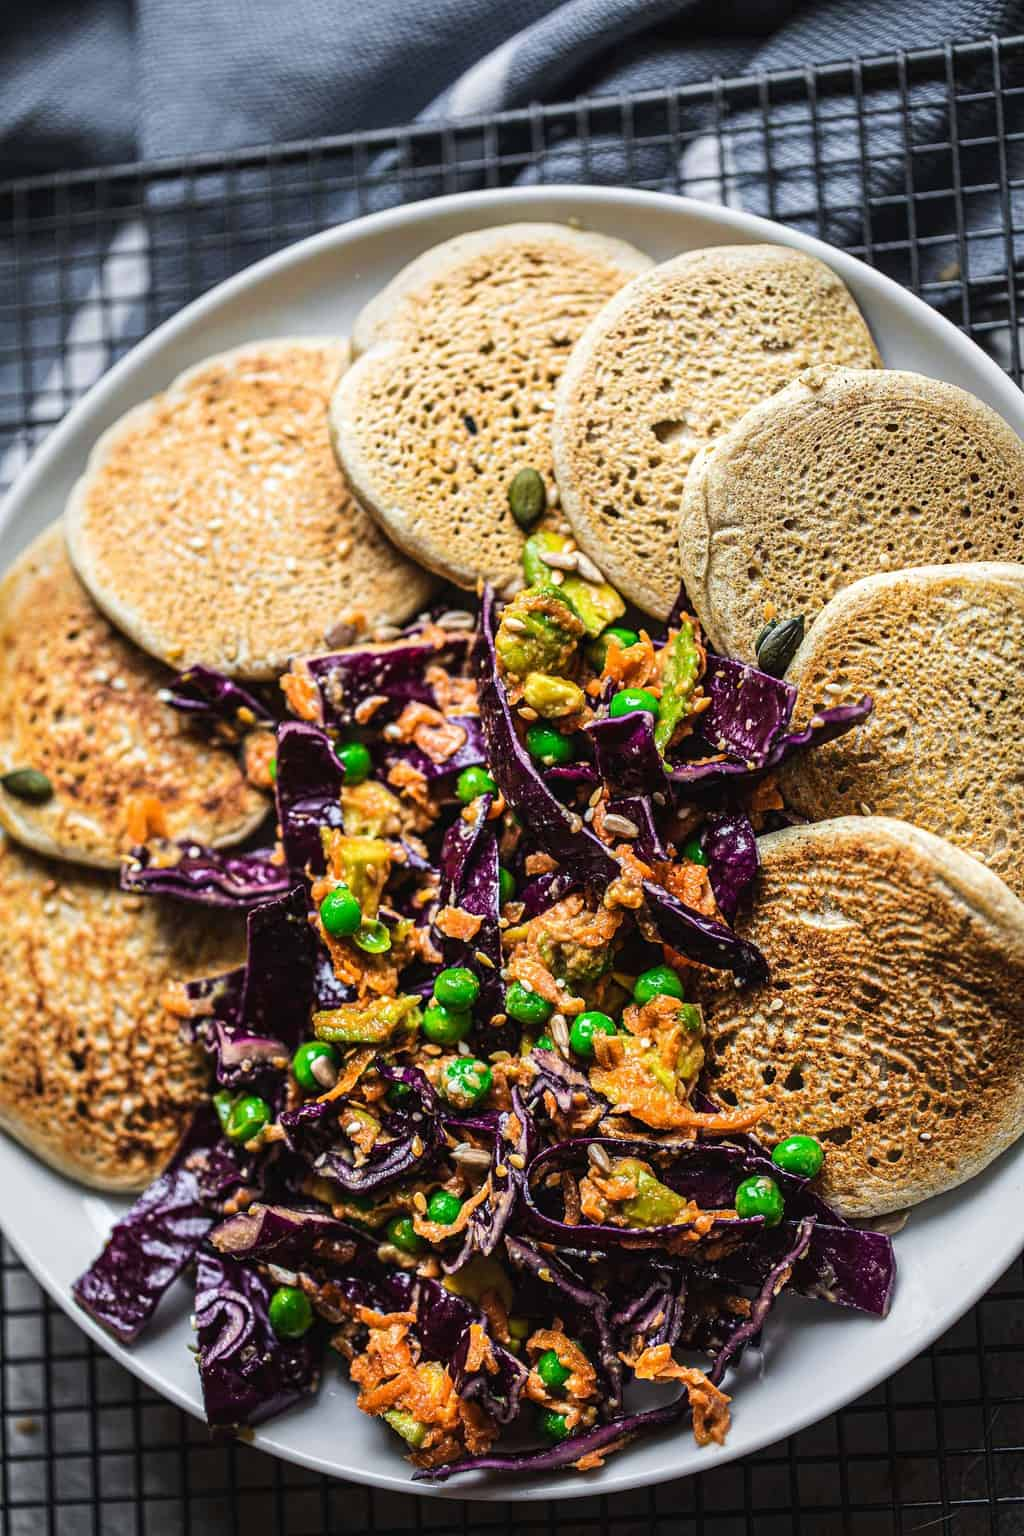 Savoury pancakes on a white plate with a purple cabbage slaw